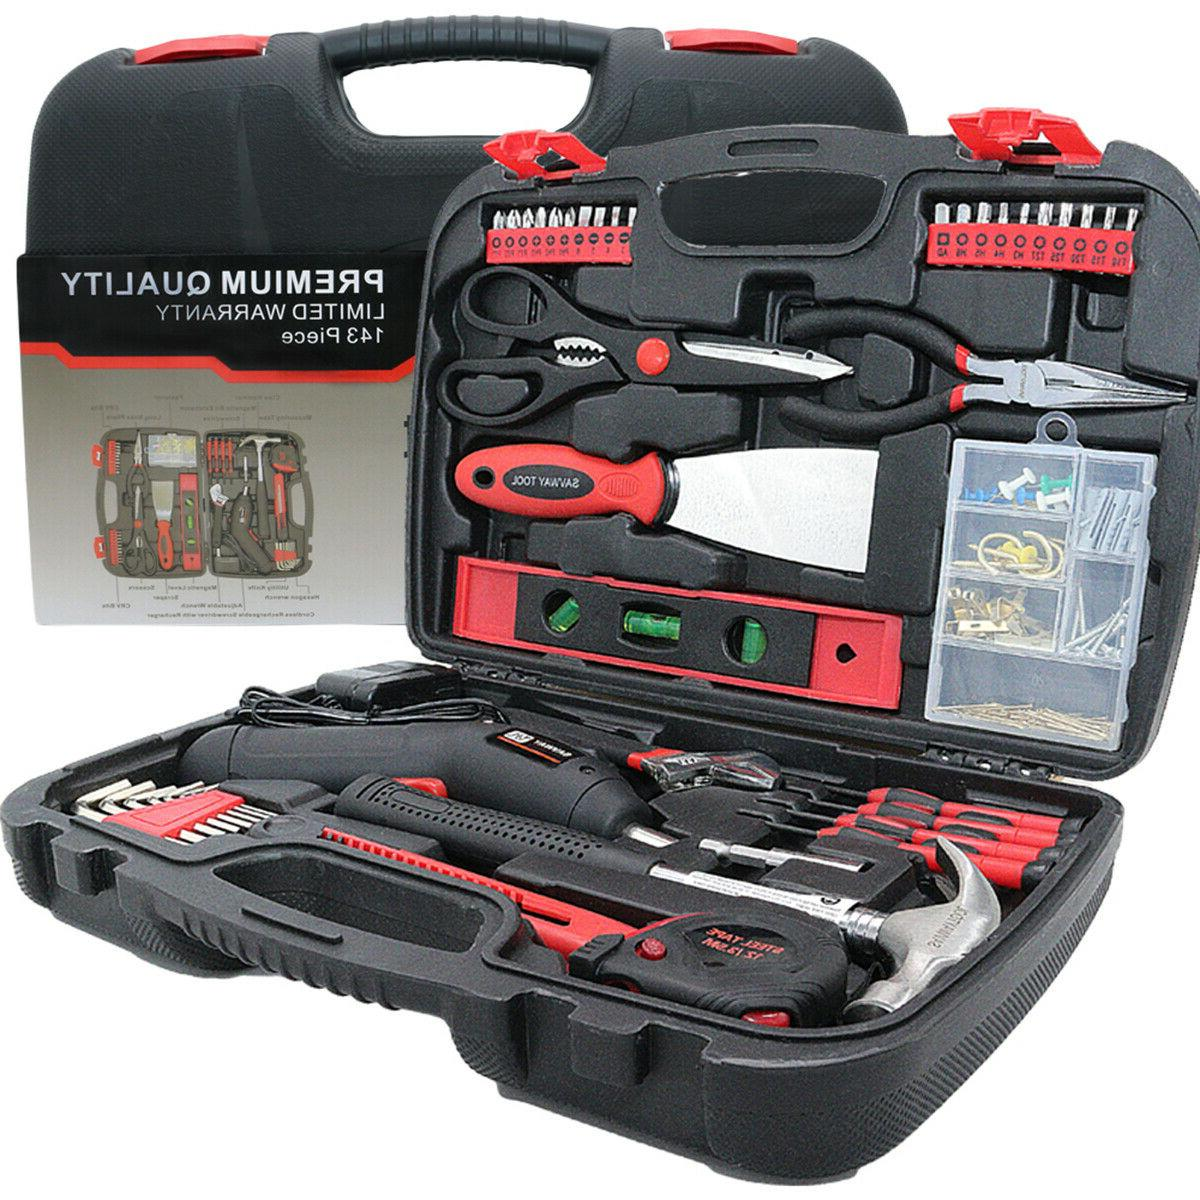 SAVWAY Household Power Rechargeable Drill Kit